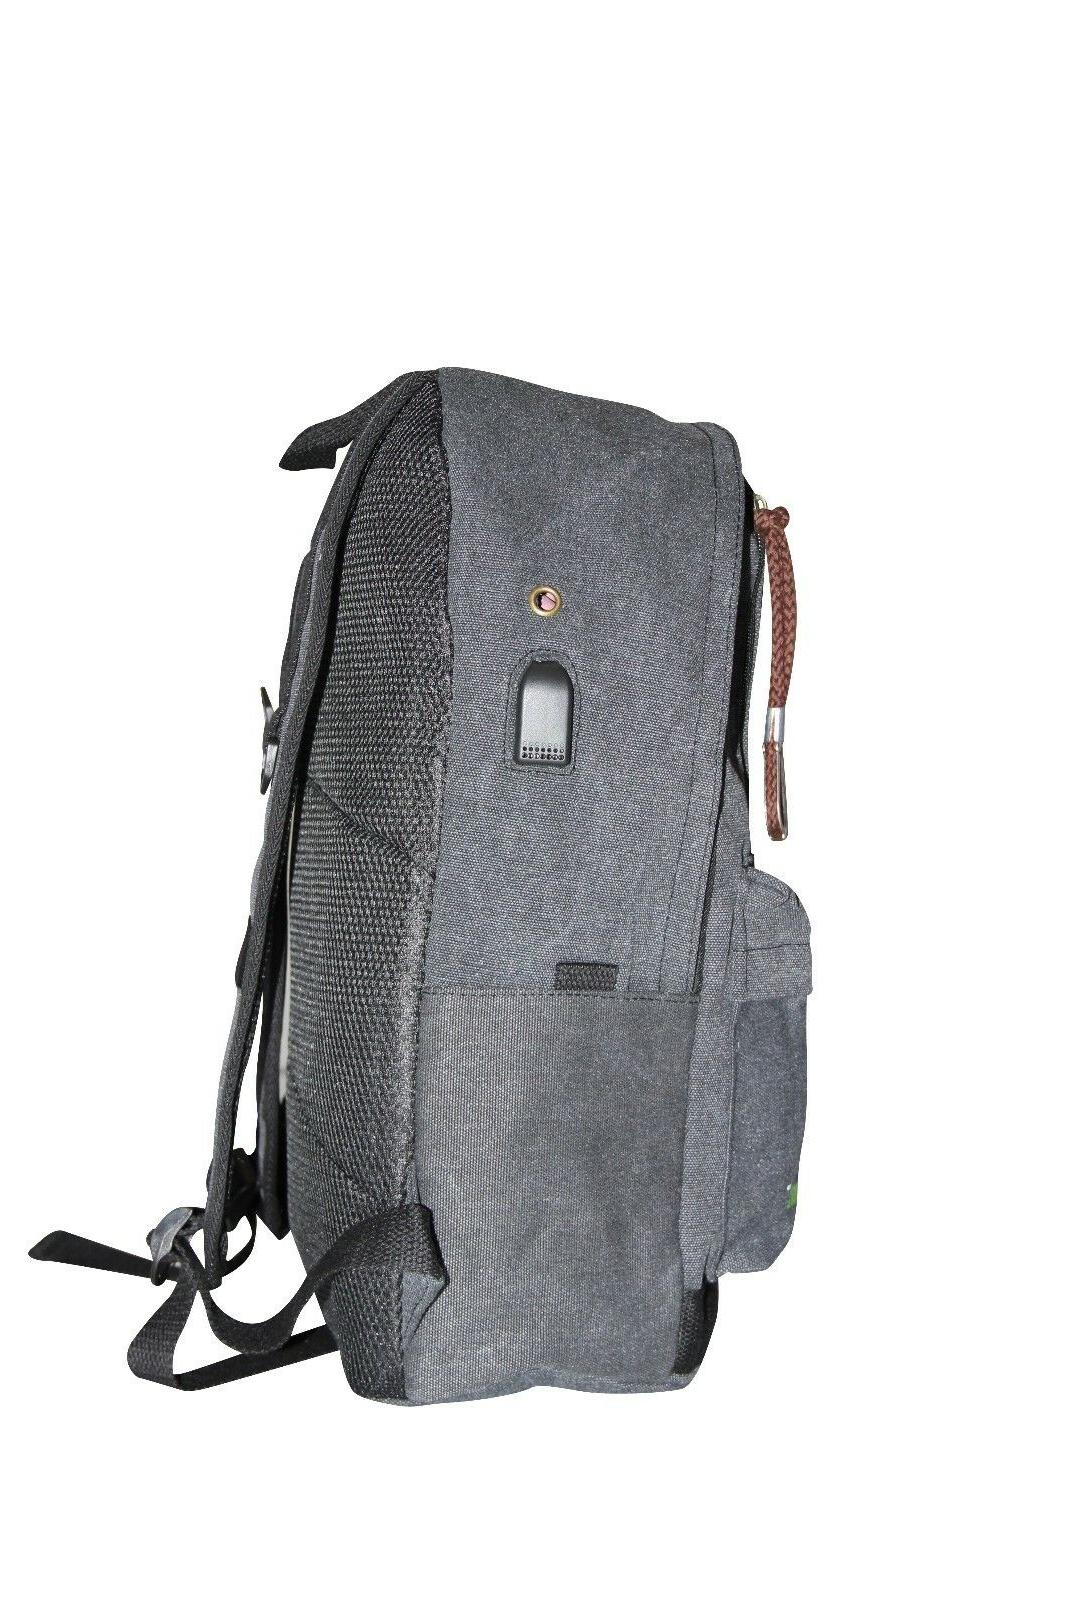 Heavy Duty Canvas Backpack Designer